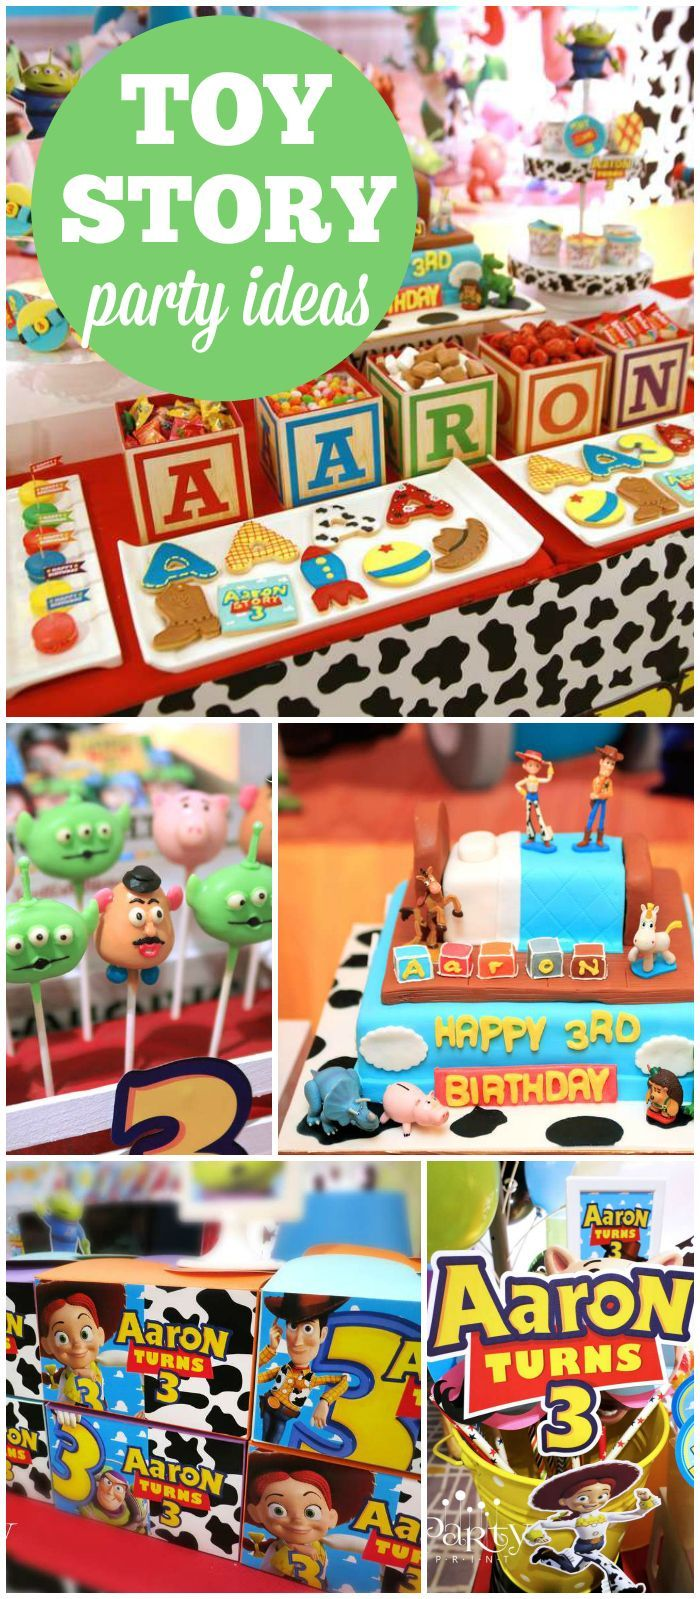 Toy story party ideas birthday in a box - Toy Story Birthday Aaron S 3rd Birthday Party